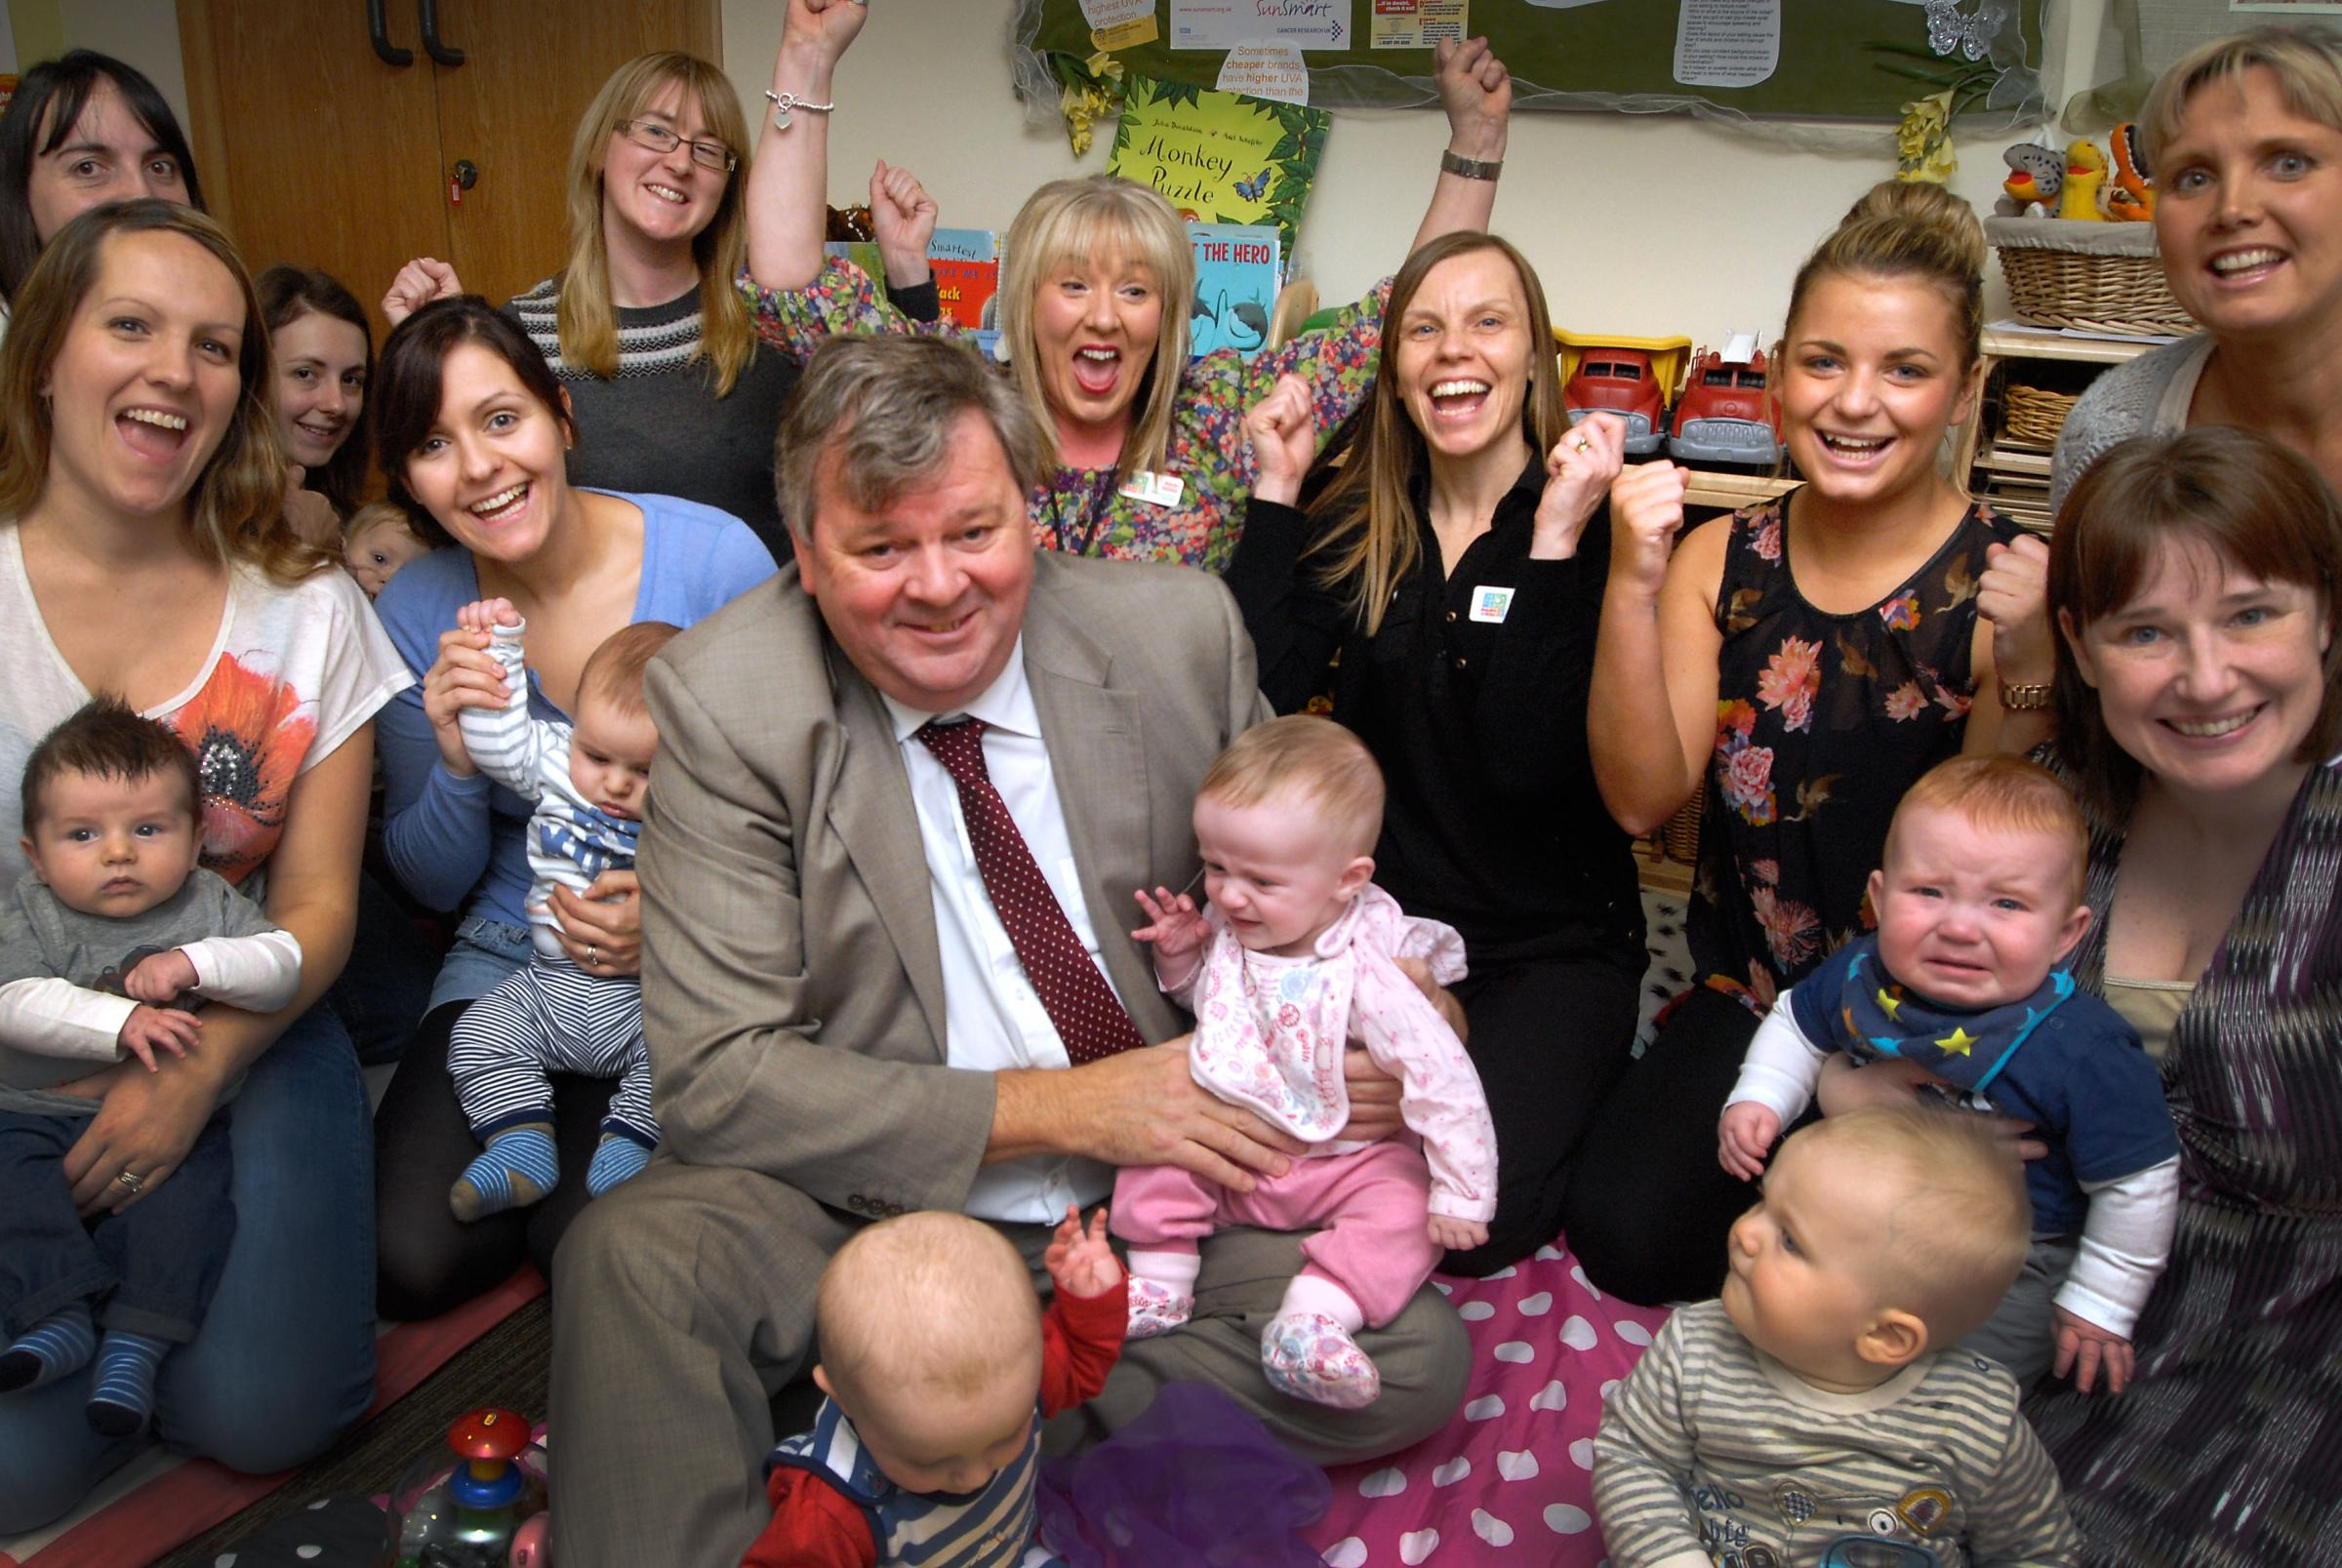 Cllr Tim Crumpton with staff, mums and toddlers at Peter's Hill Children's Centre. Buy photo: 481351L